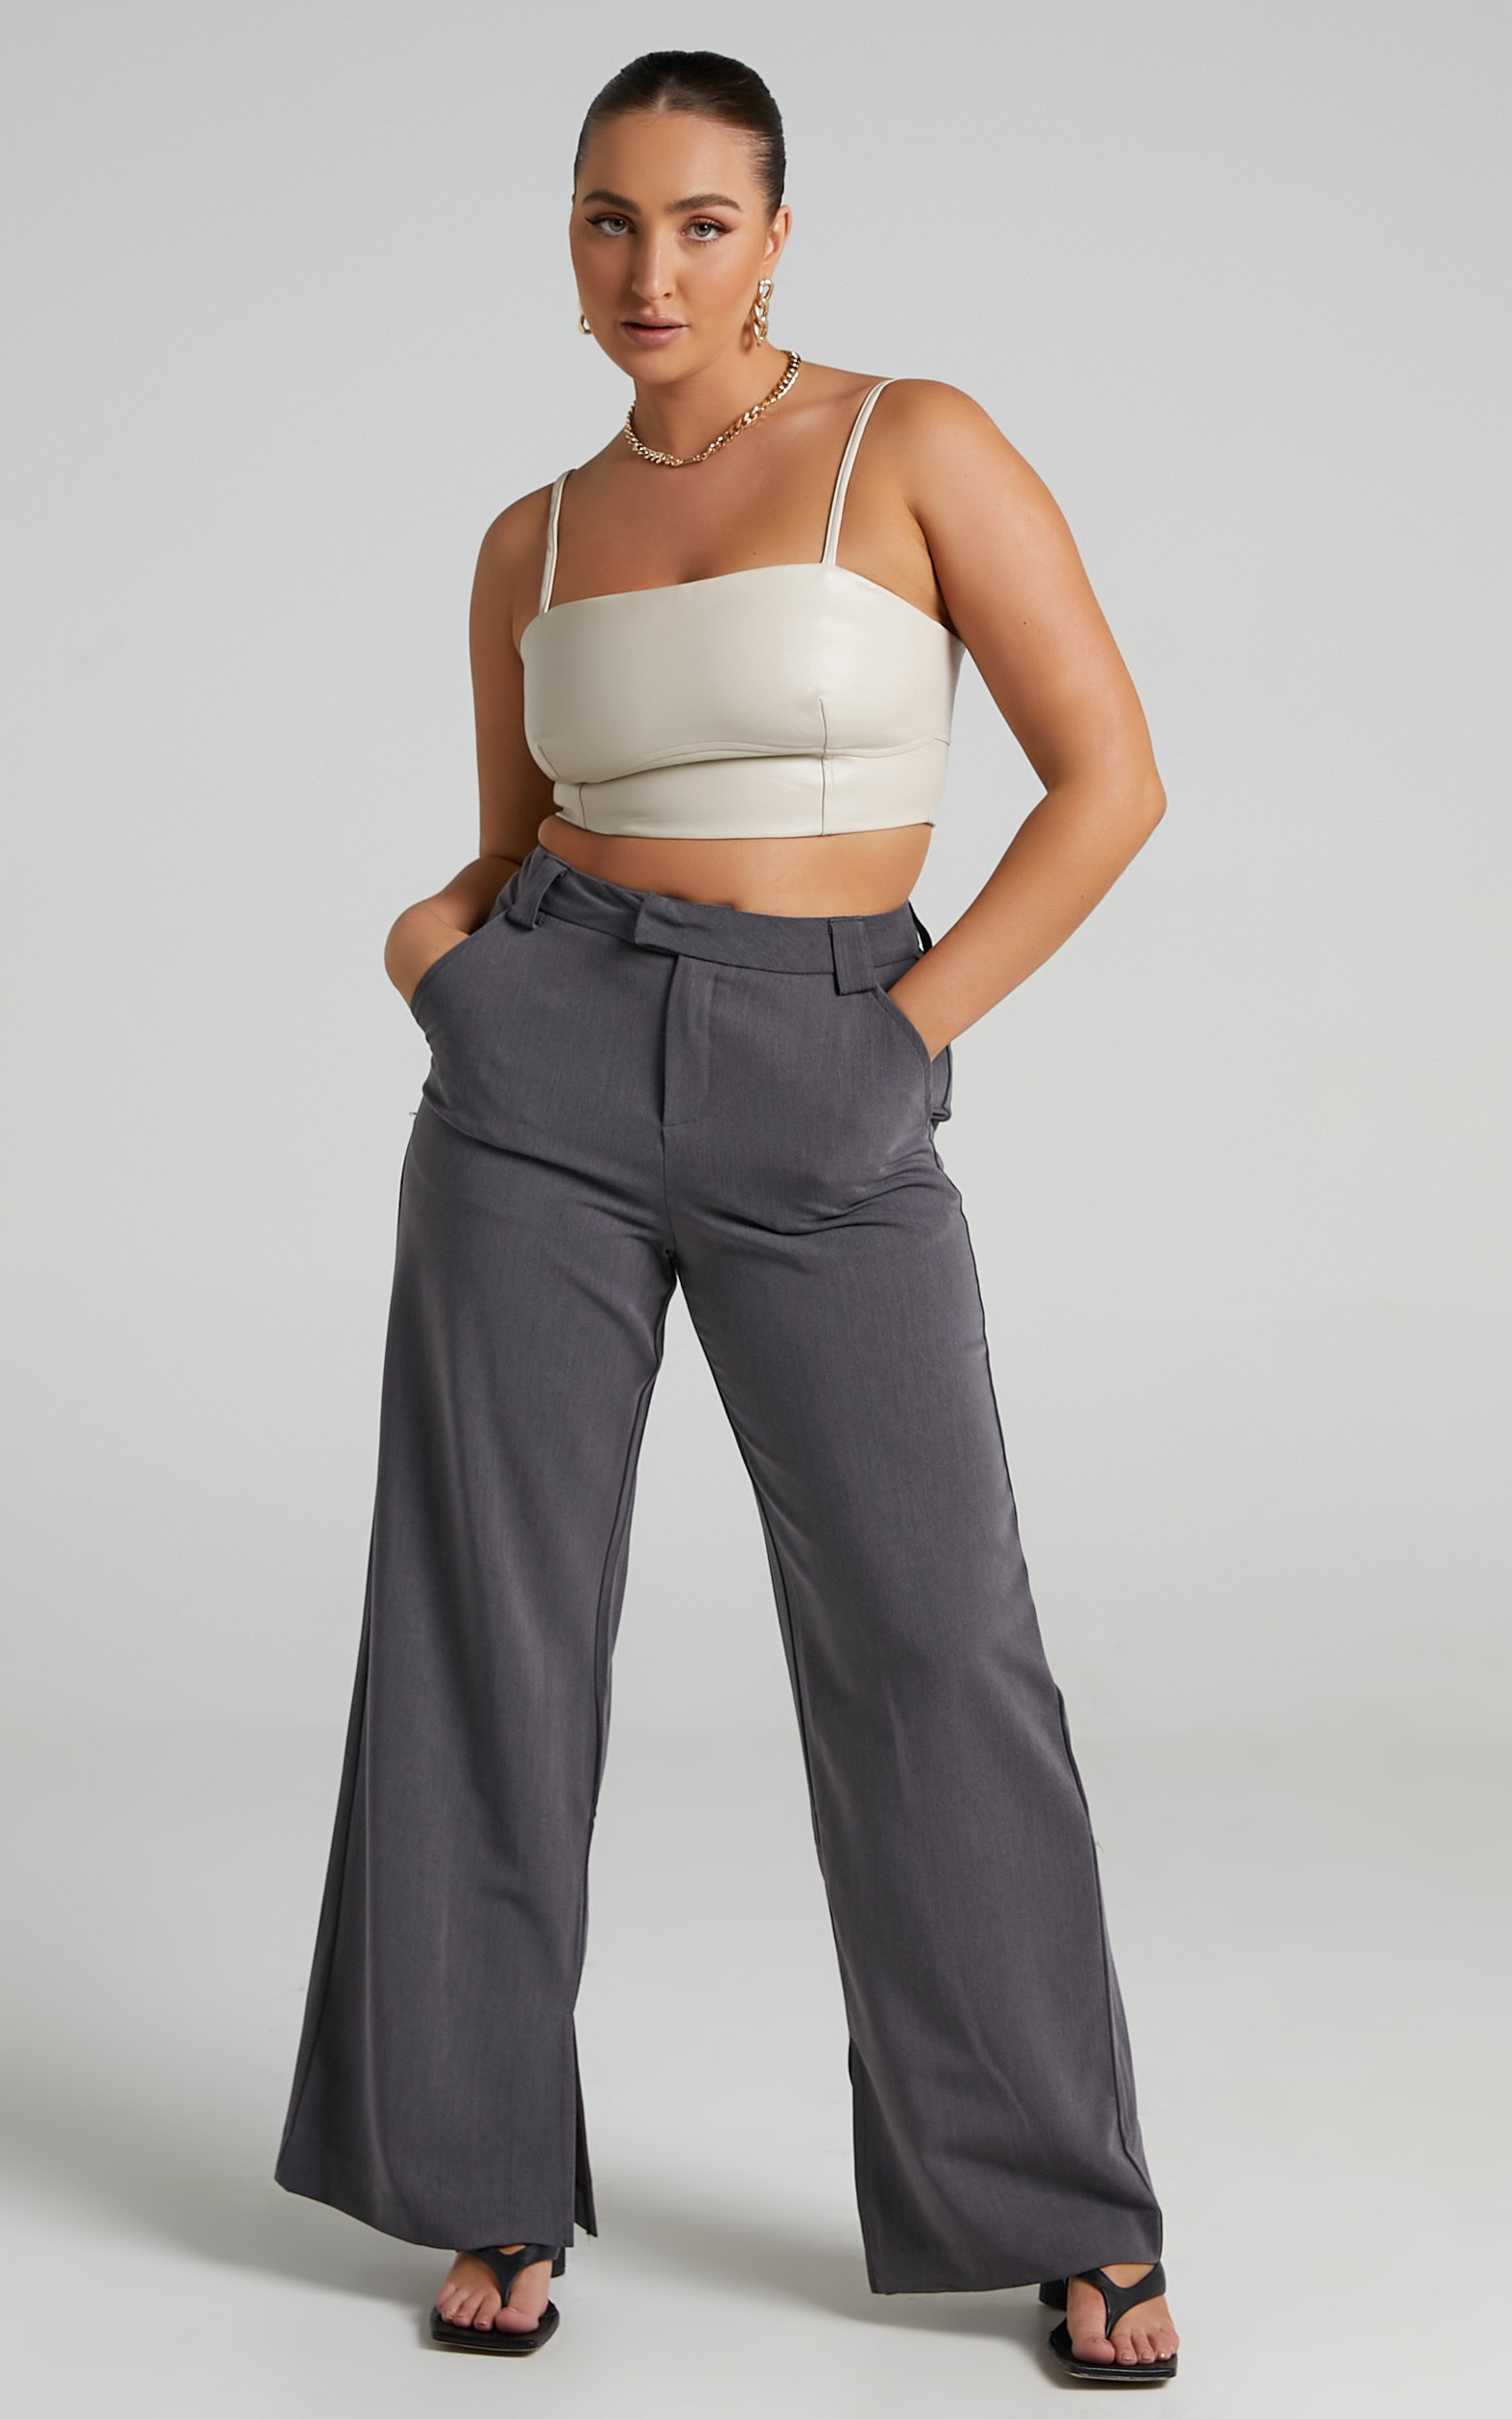 Maxwell Under Bust Detail Crop Top in Taupe - 06, BRN1, hi-res image number null